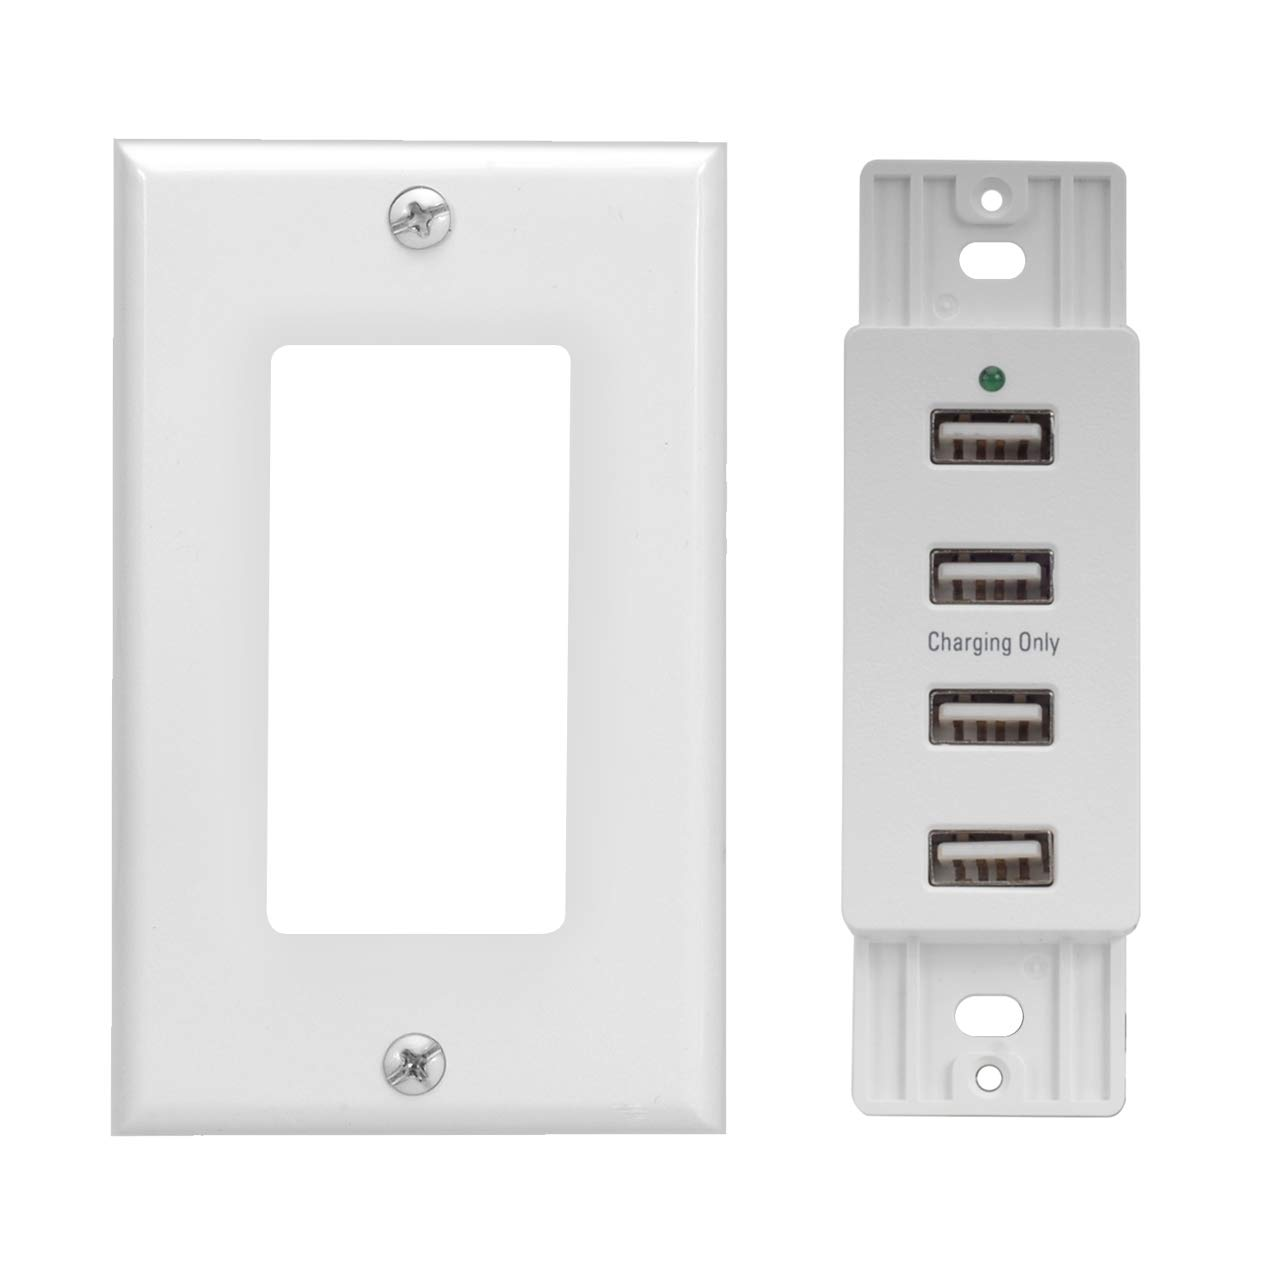 Magnadyne WC-USB-W White Wall Mount 4 USB Charging Ports White Wall Plate included